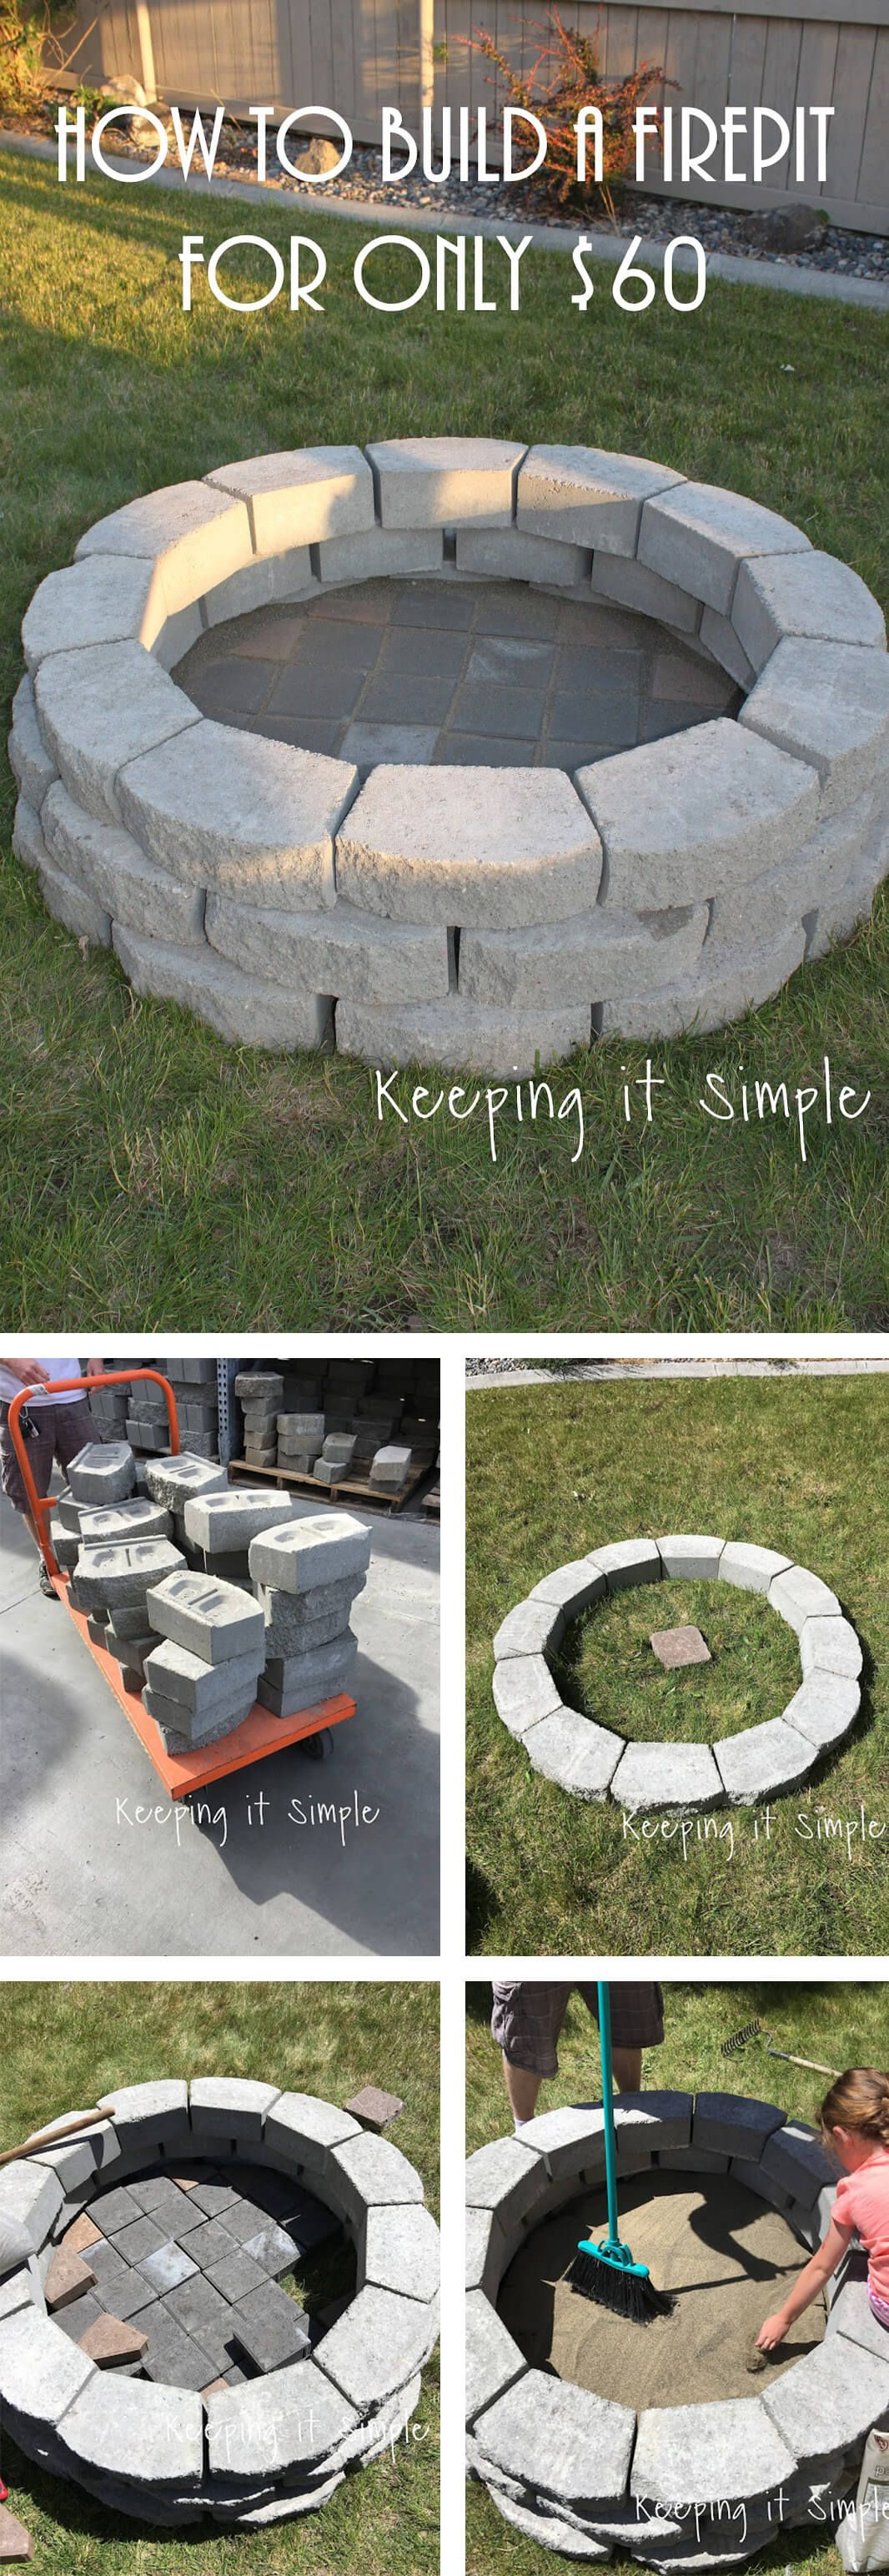 ac1af573cb94dcca3d358145a0fadbef Top Result 50 Awesome Easy to Build Fire Pit Pic 2018 Hiw6